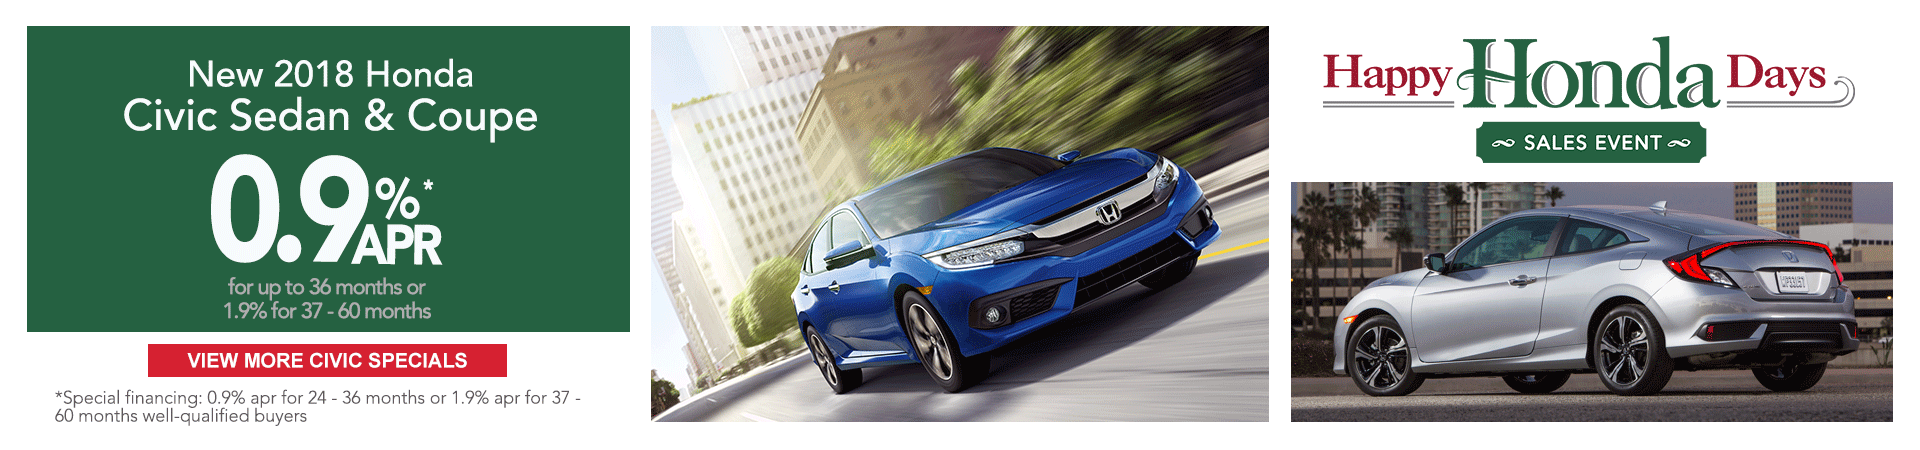 2018 Honda Civic Happy Honda Day Sale Event